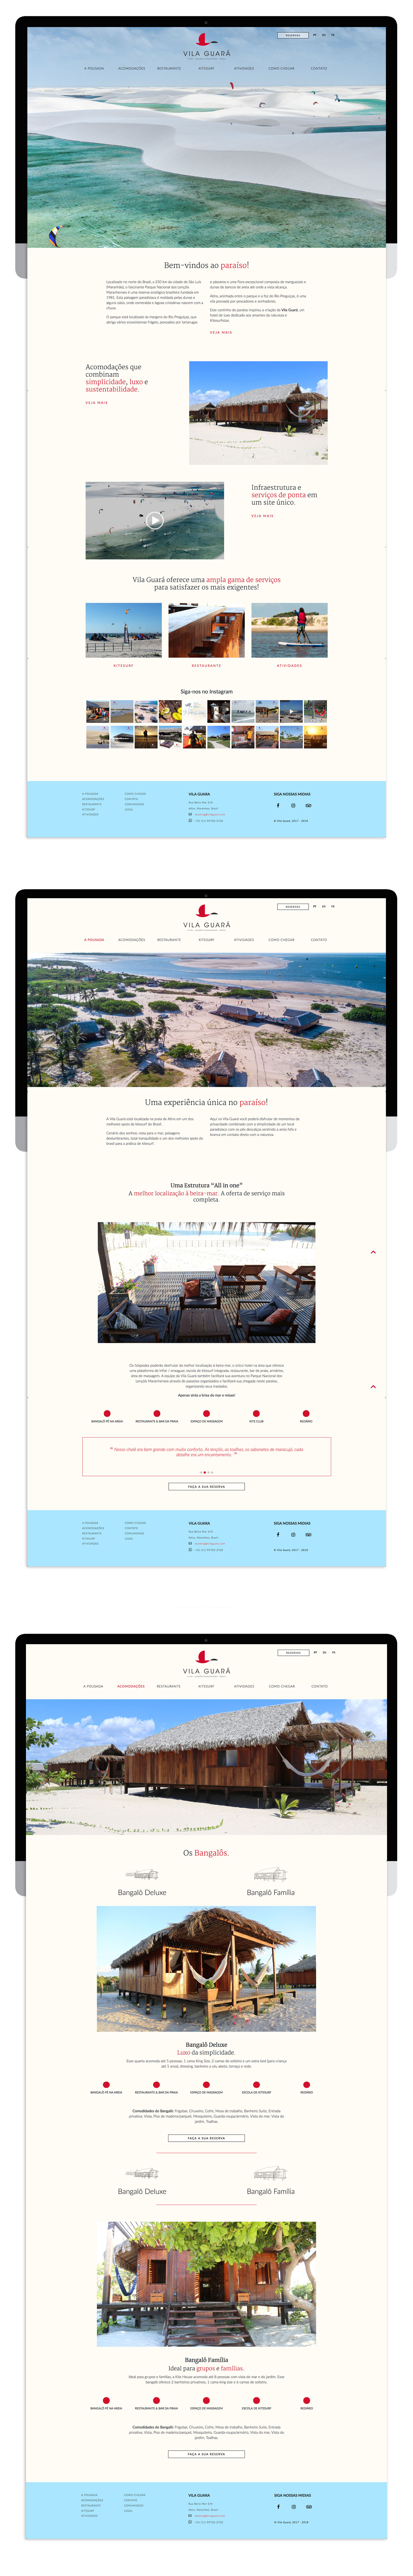 pousada vila guara' [art direction web design and web development]